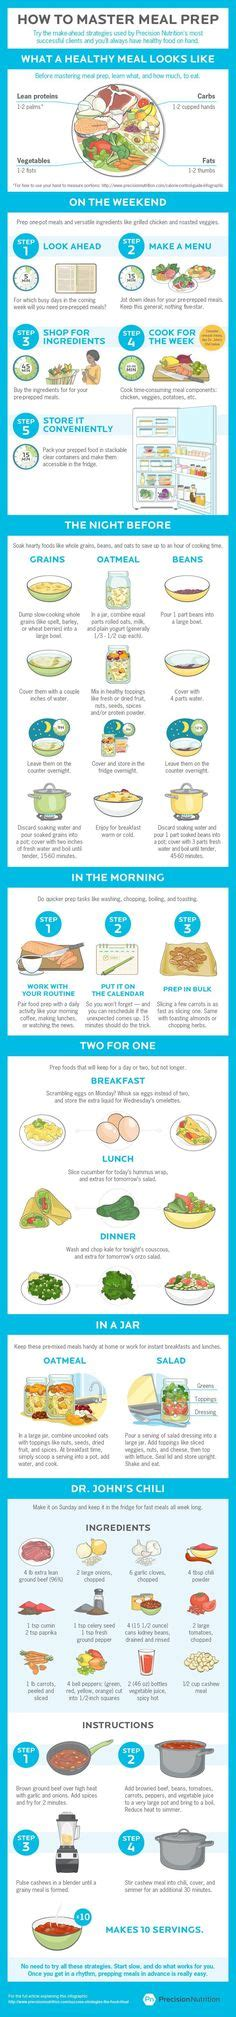 Blood Glucose Chart Health And Fitness Pinterest Diabetes Precision Nutrition Meal Plan Template